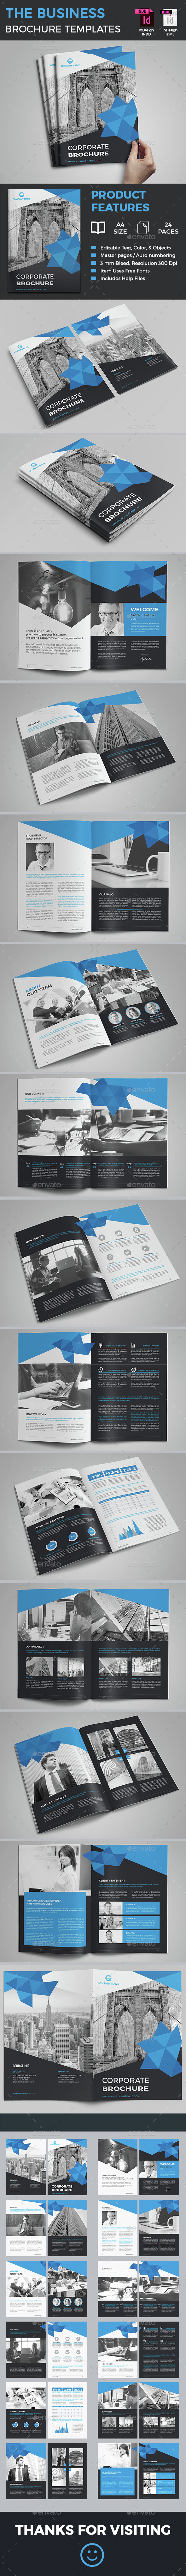 The Business Brochure Template - Corporate Brochures